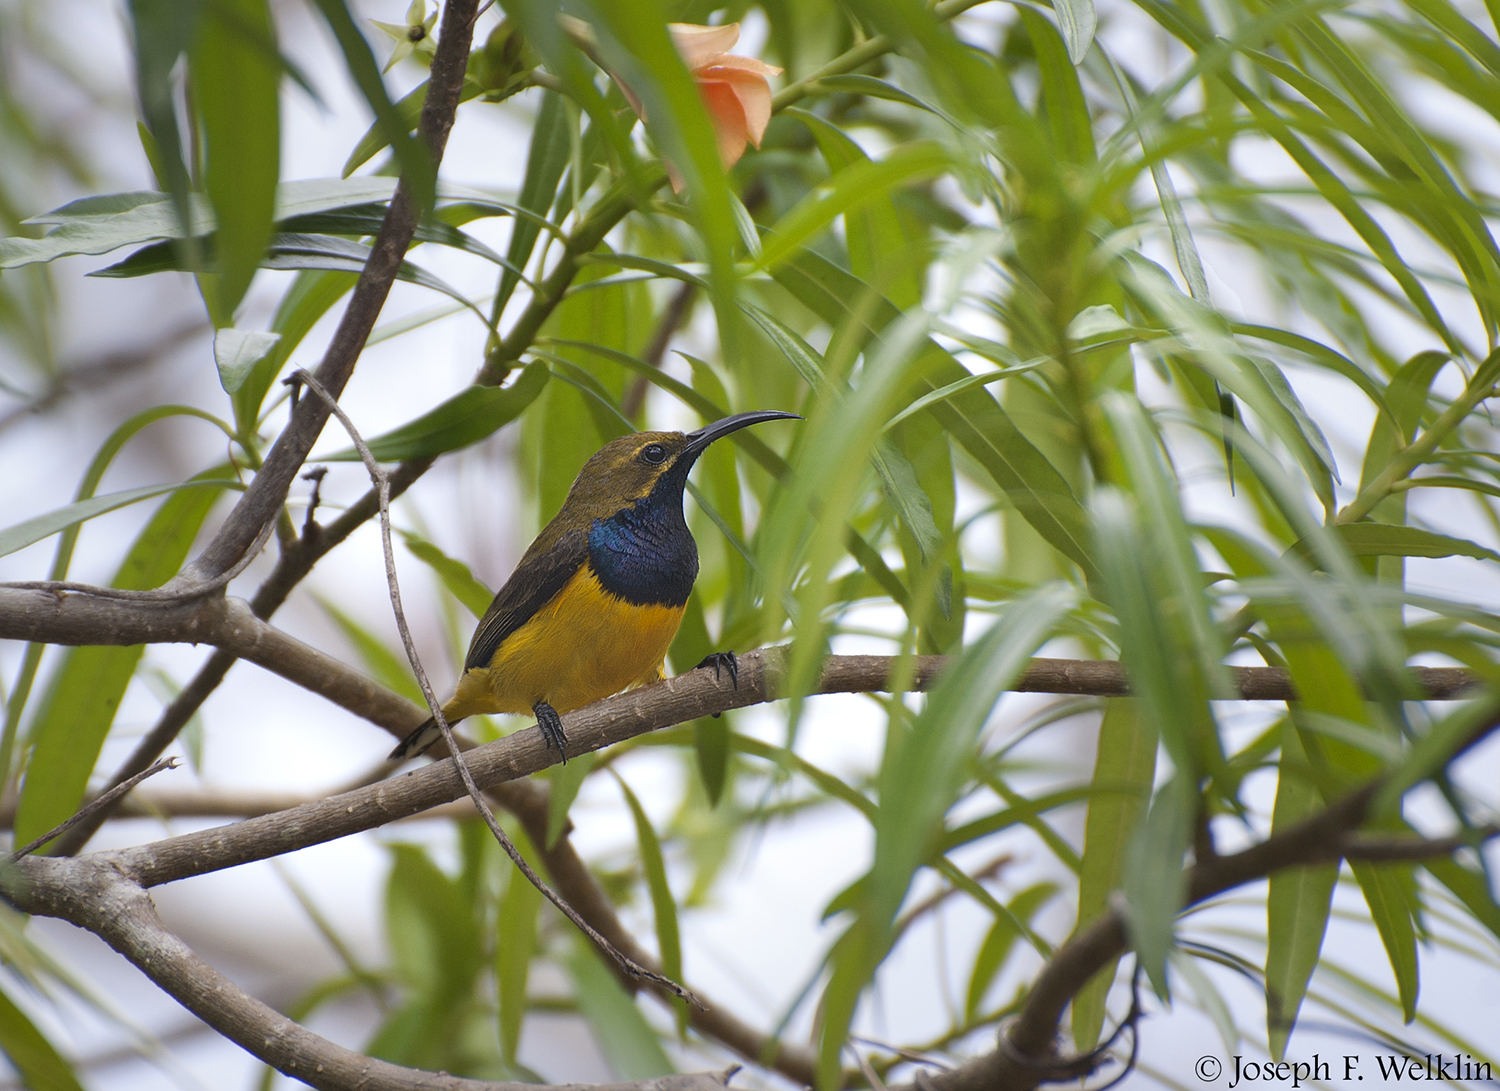 Olive-backed Sunbird. Photographed in the Atherton Tablelands, QLD, Australia.